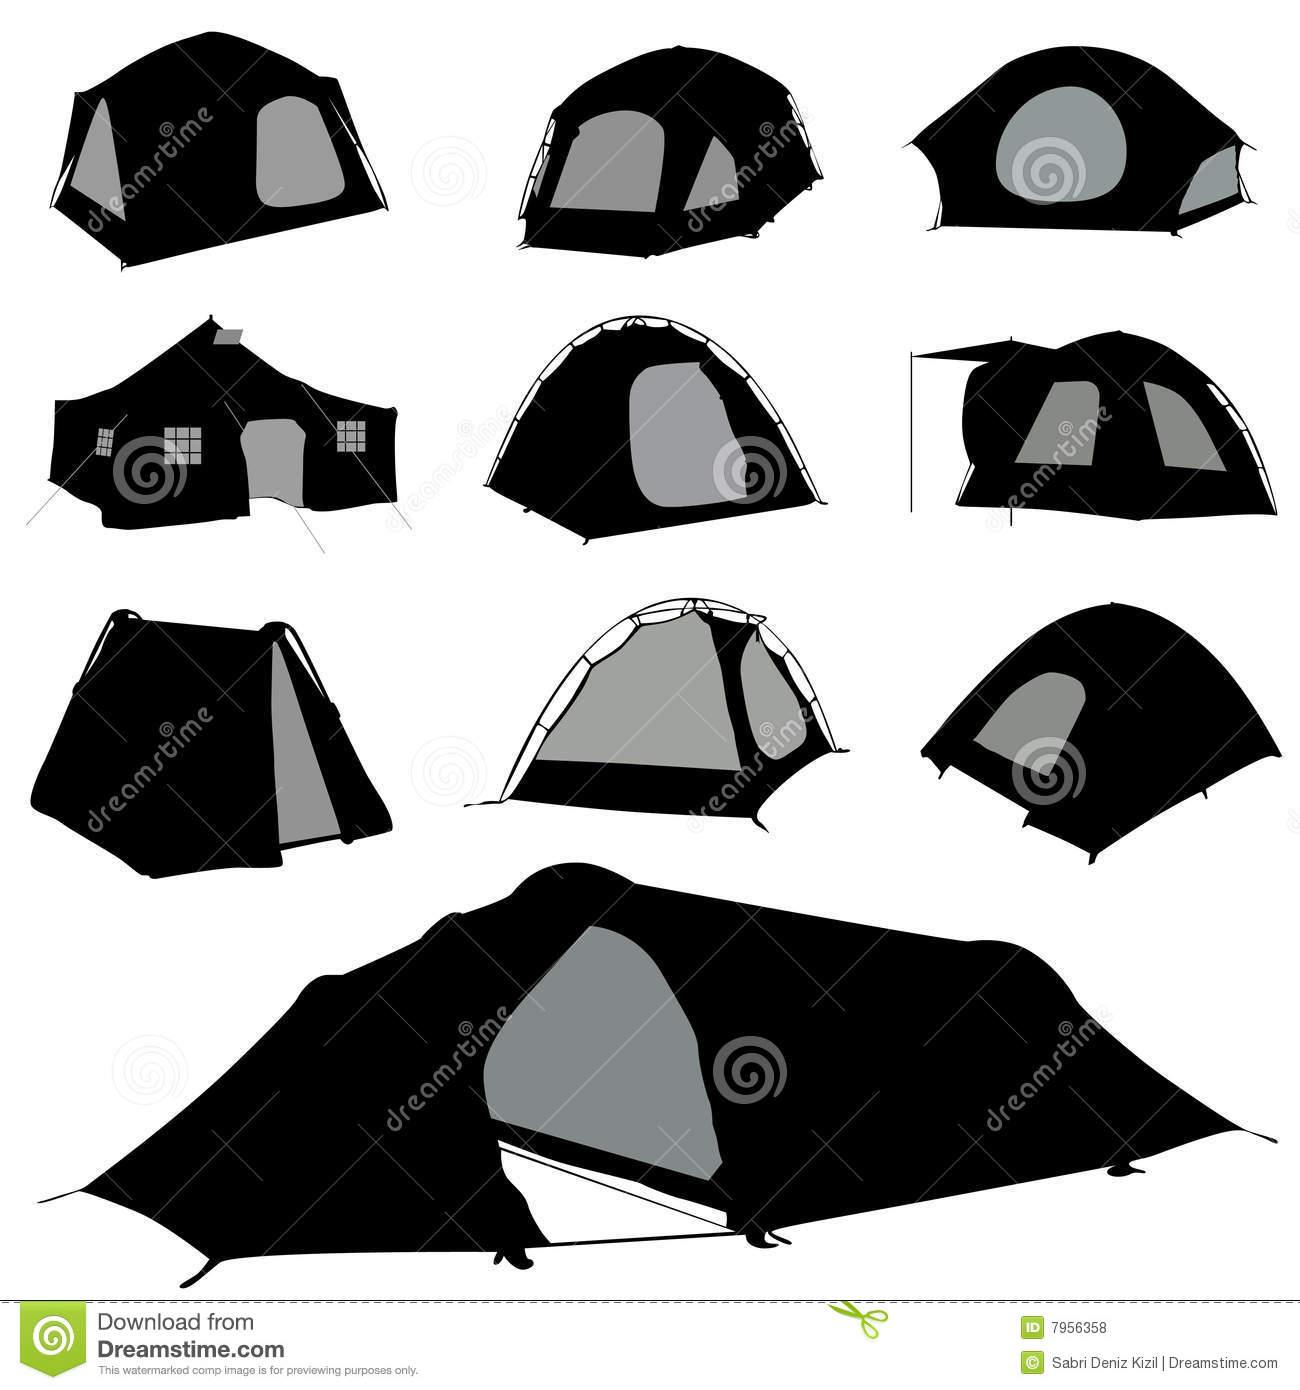 Camping Silhouette Stock Illustrations.